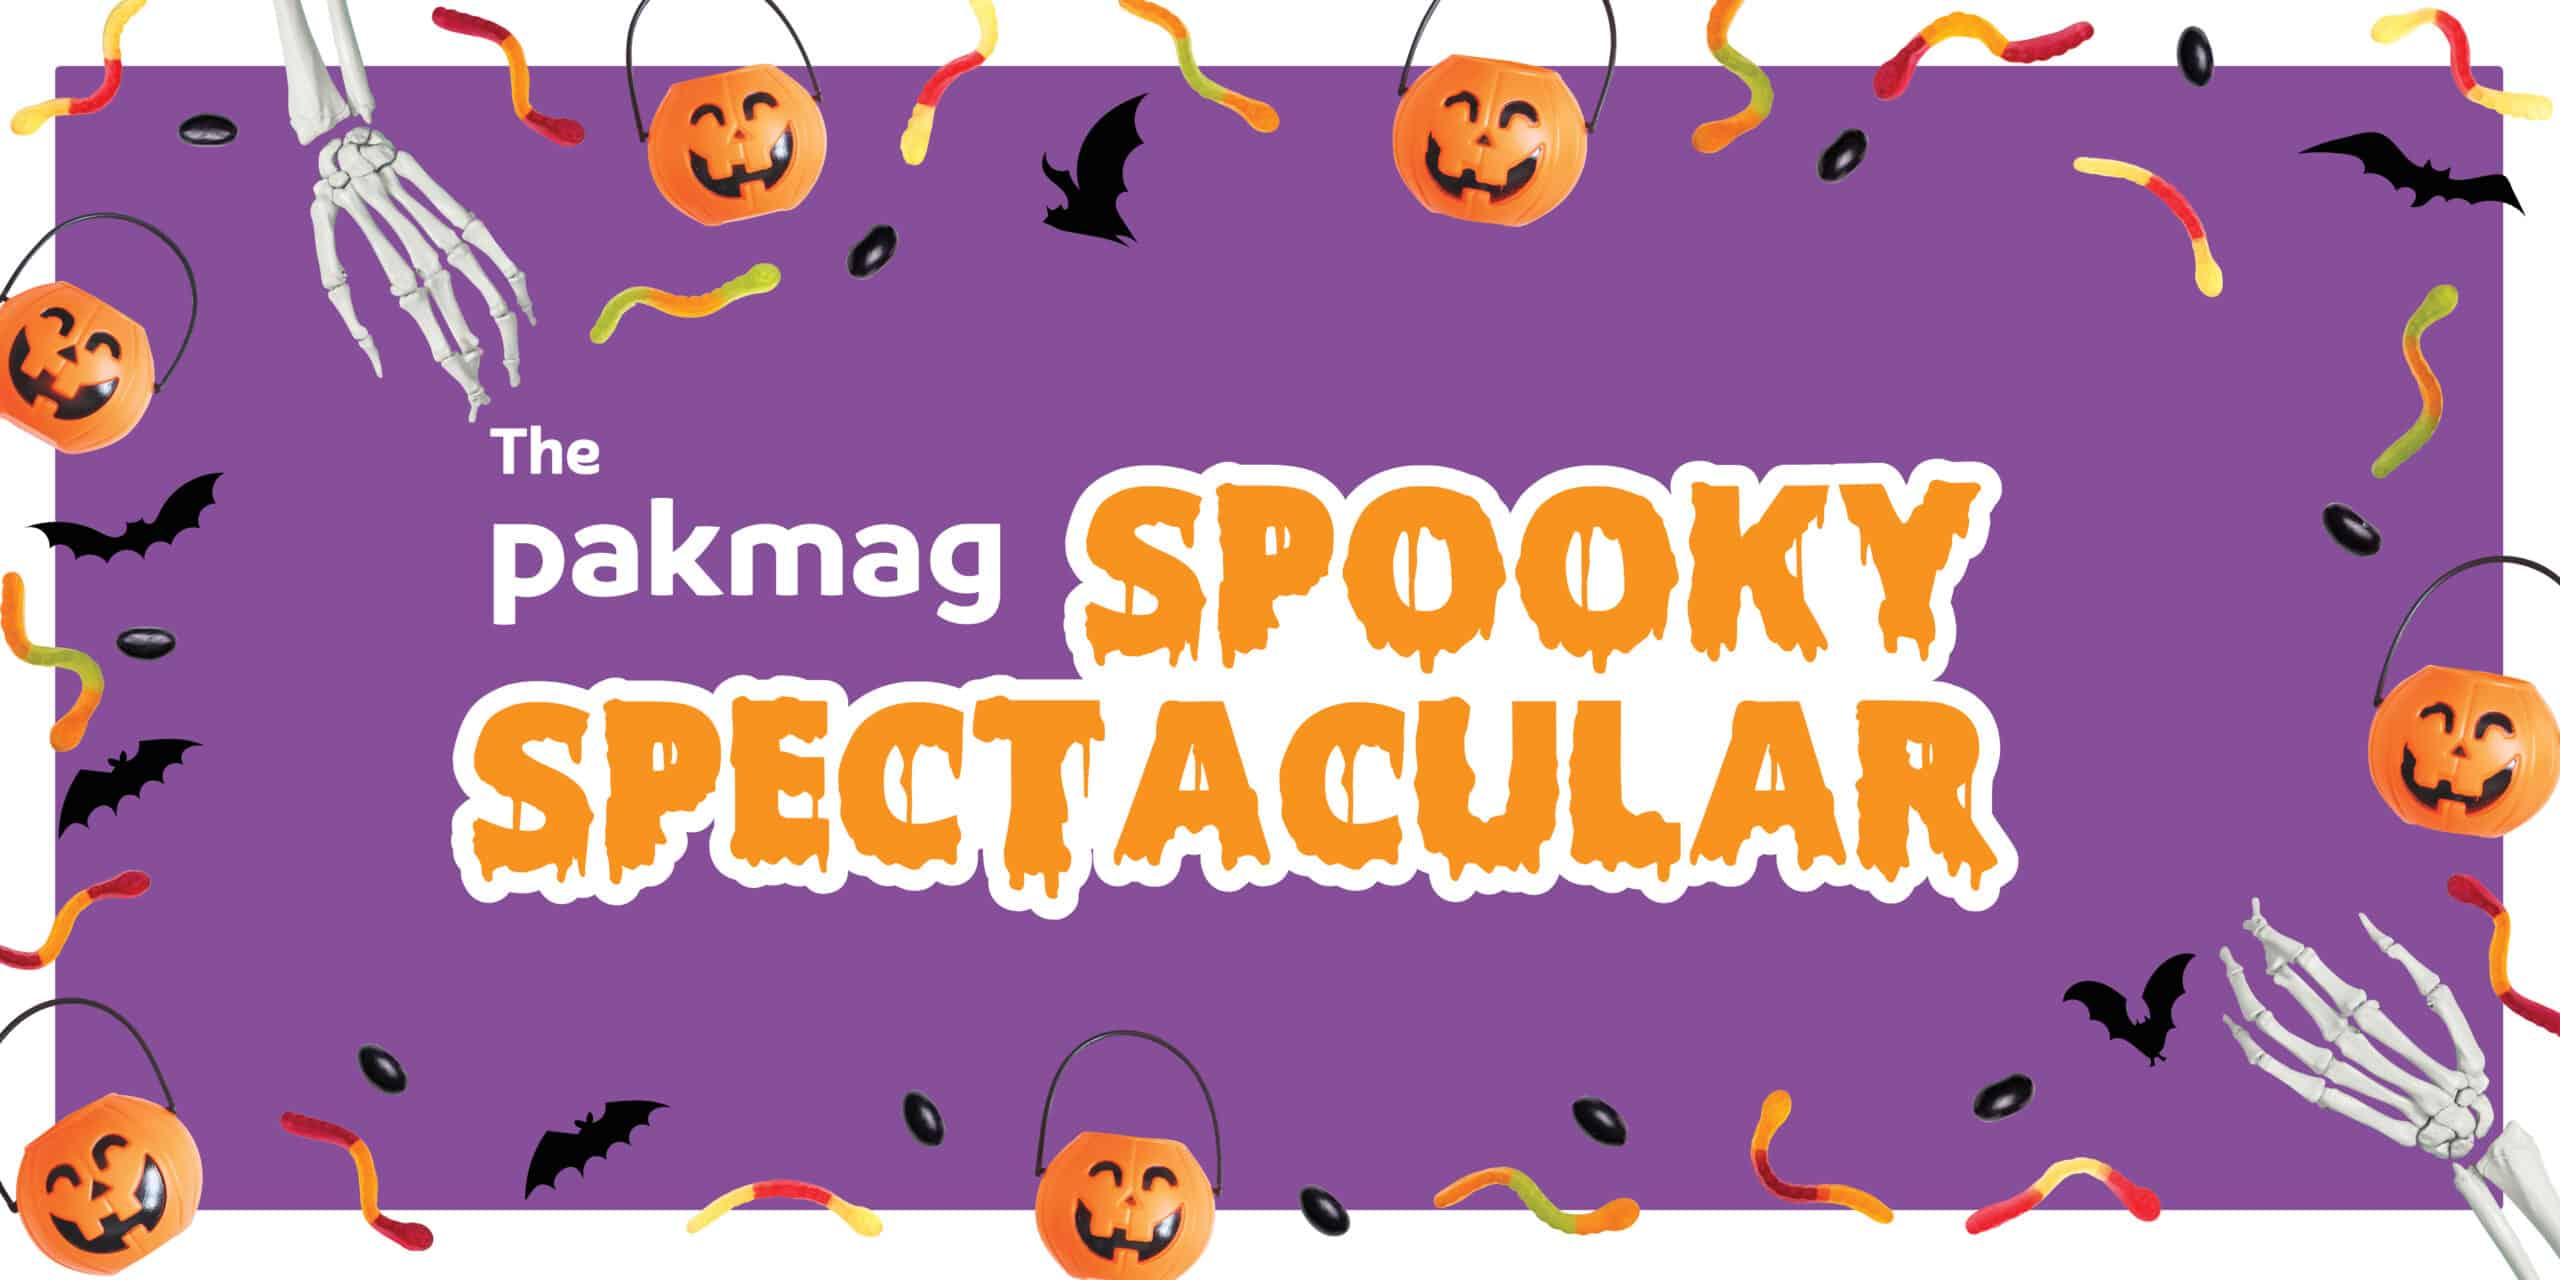 WIN A Family Pass to attend PakMag's Spooky Spectacular